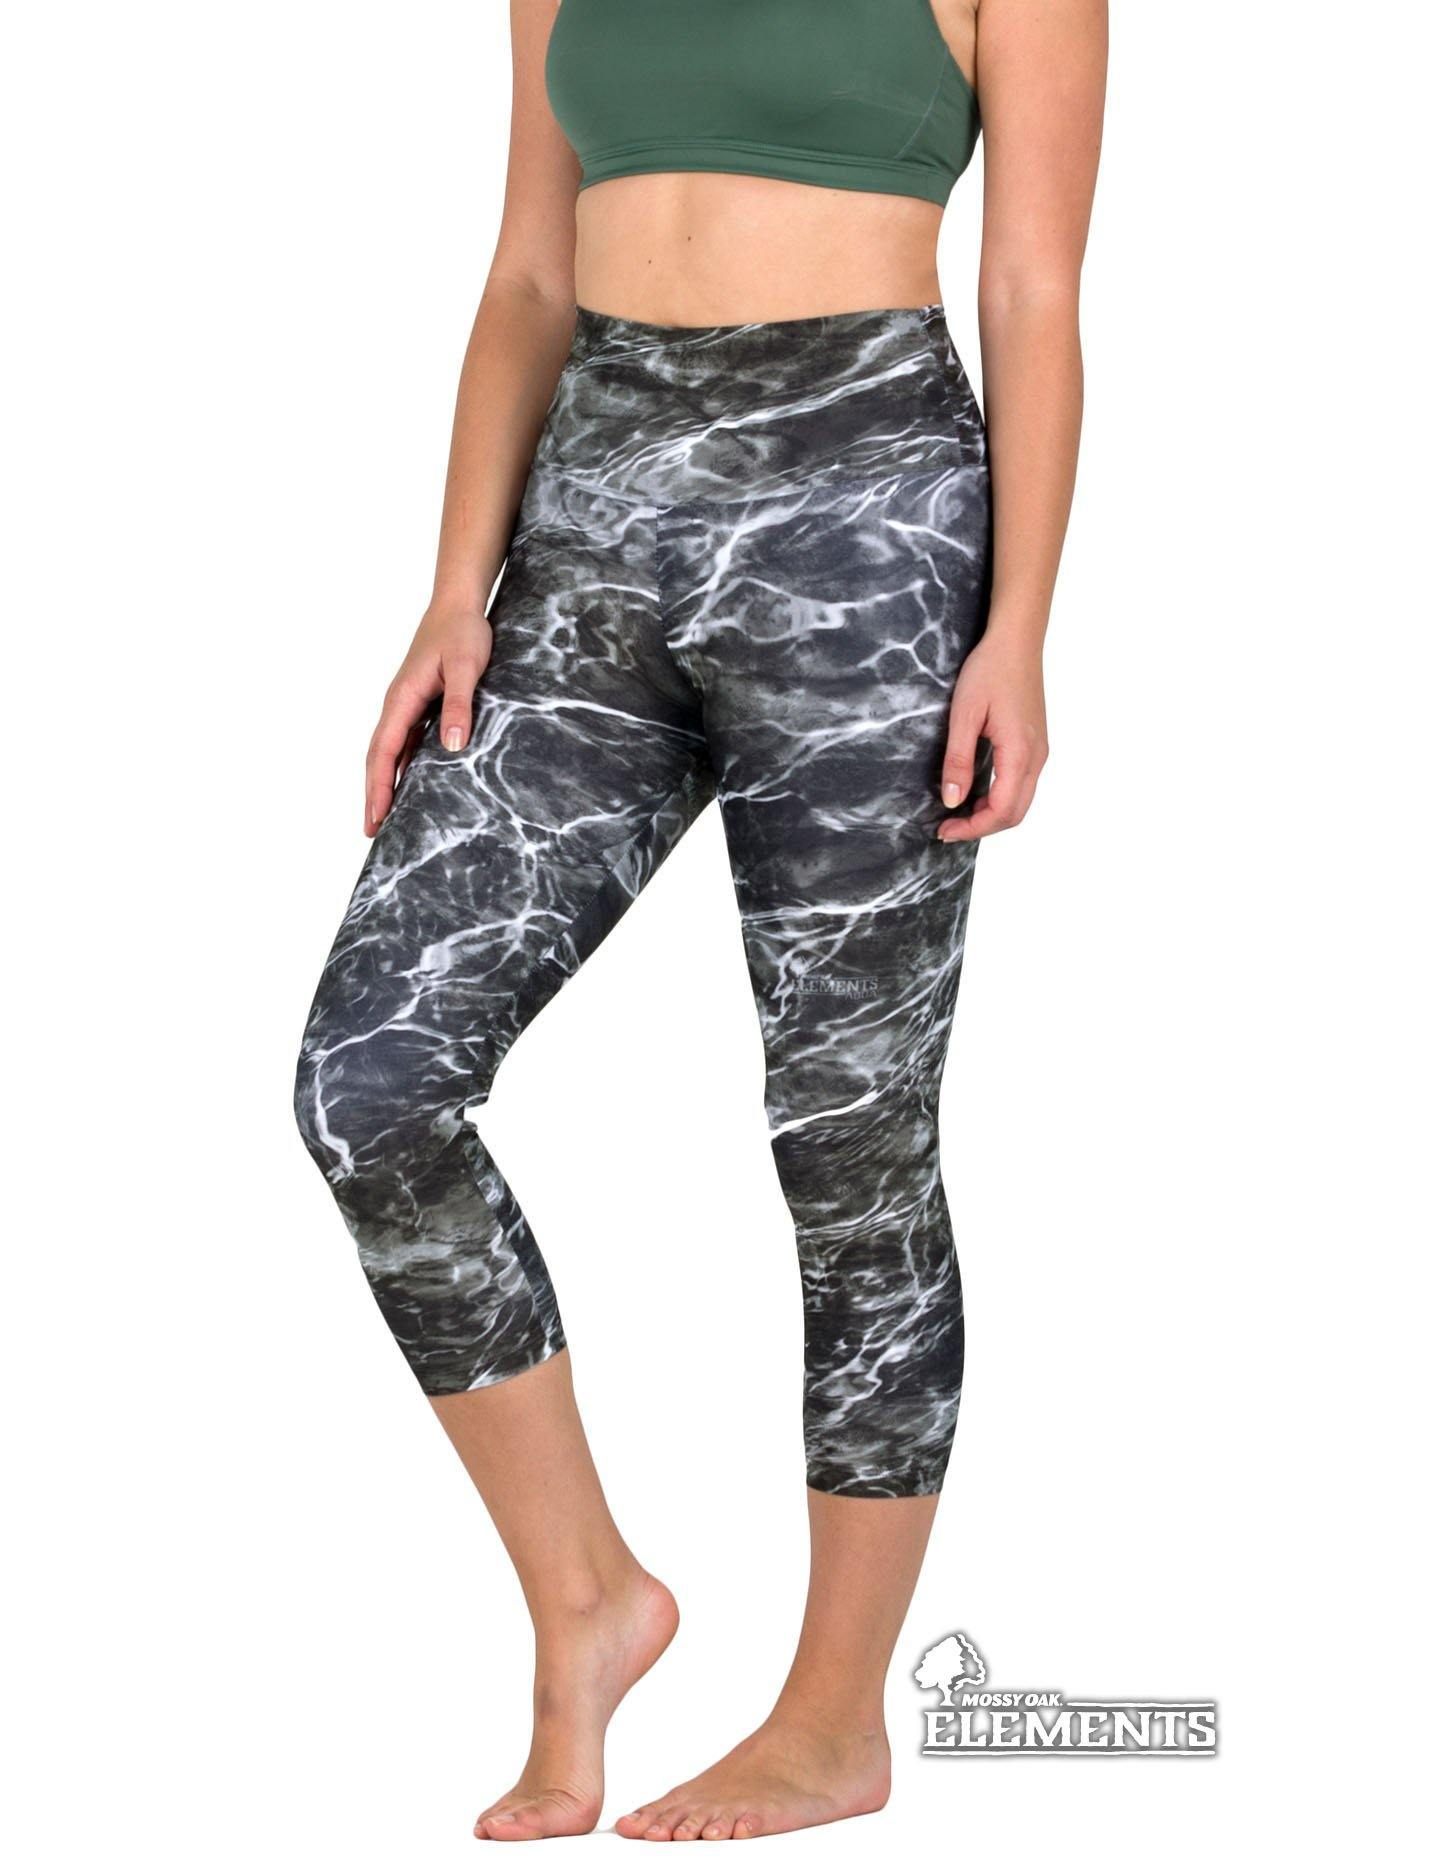 Apsara Leggings High Waist Capri, Mossy Oak Elements Blacktip - Apsara Style